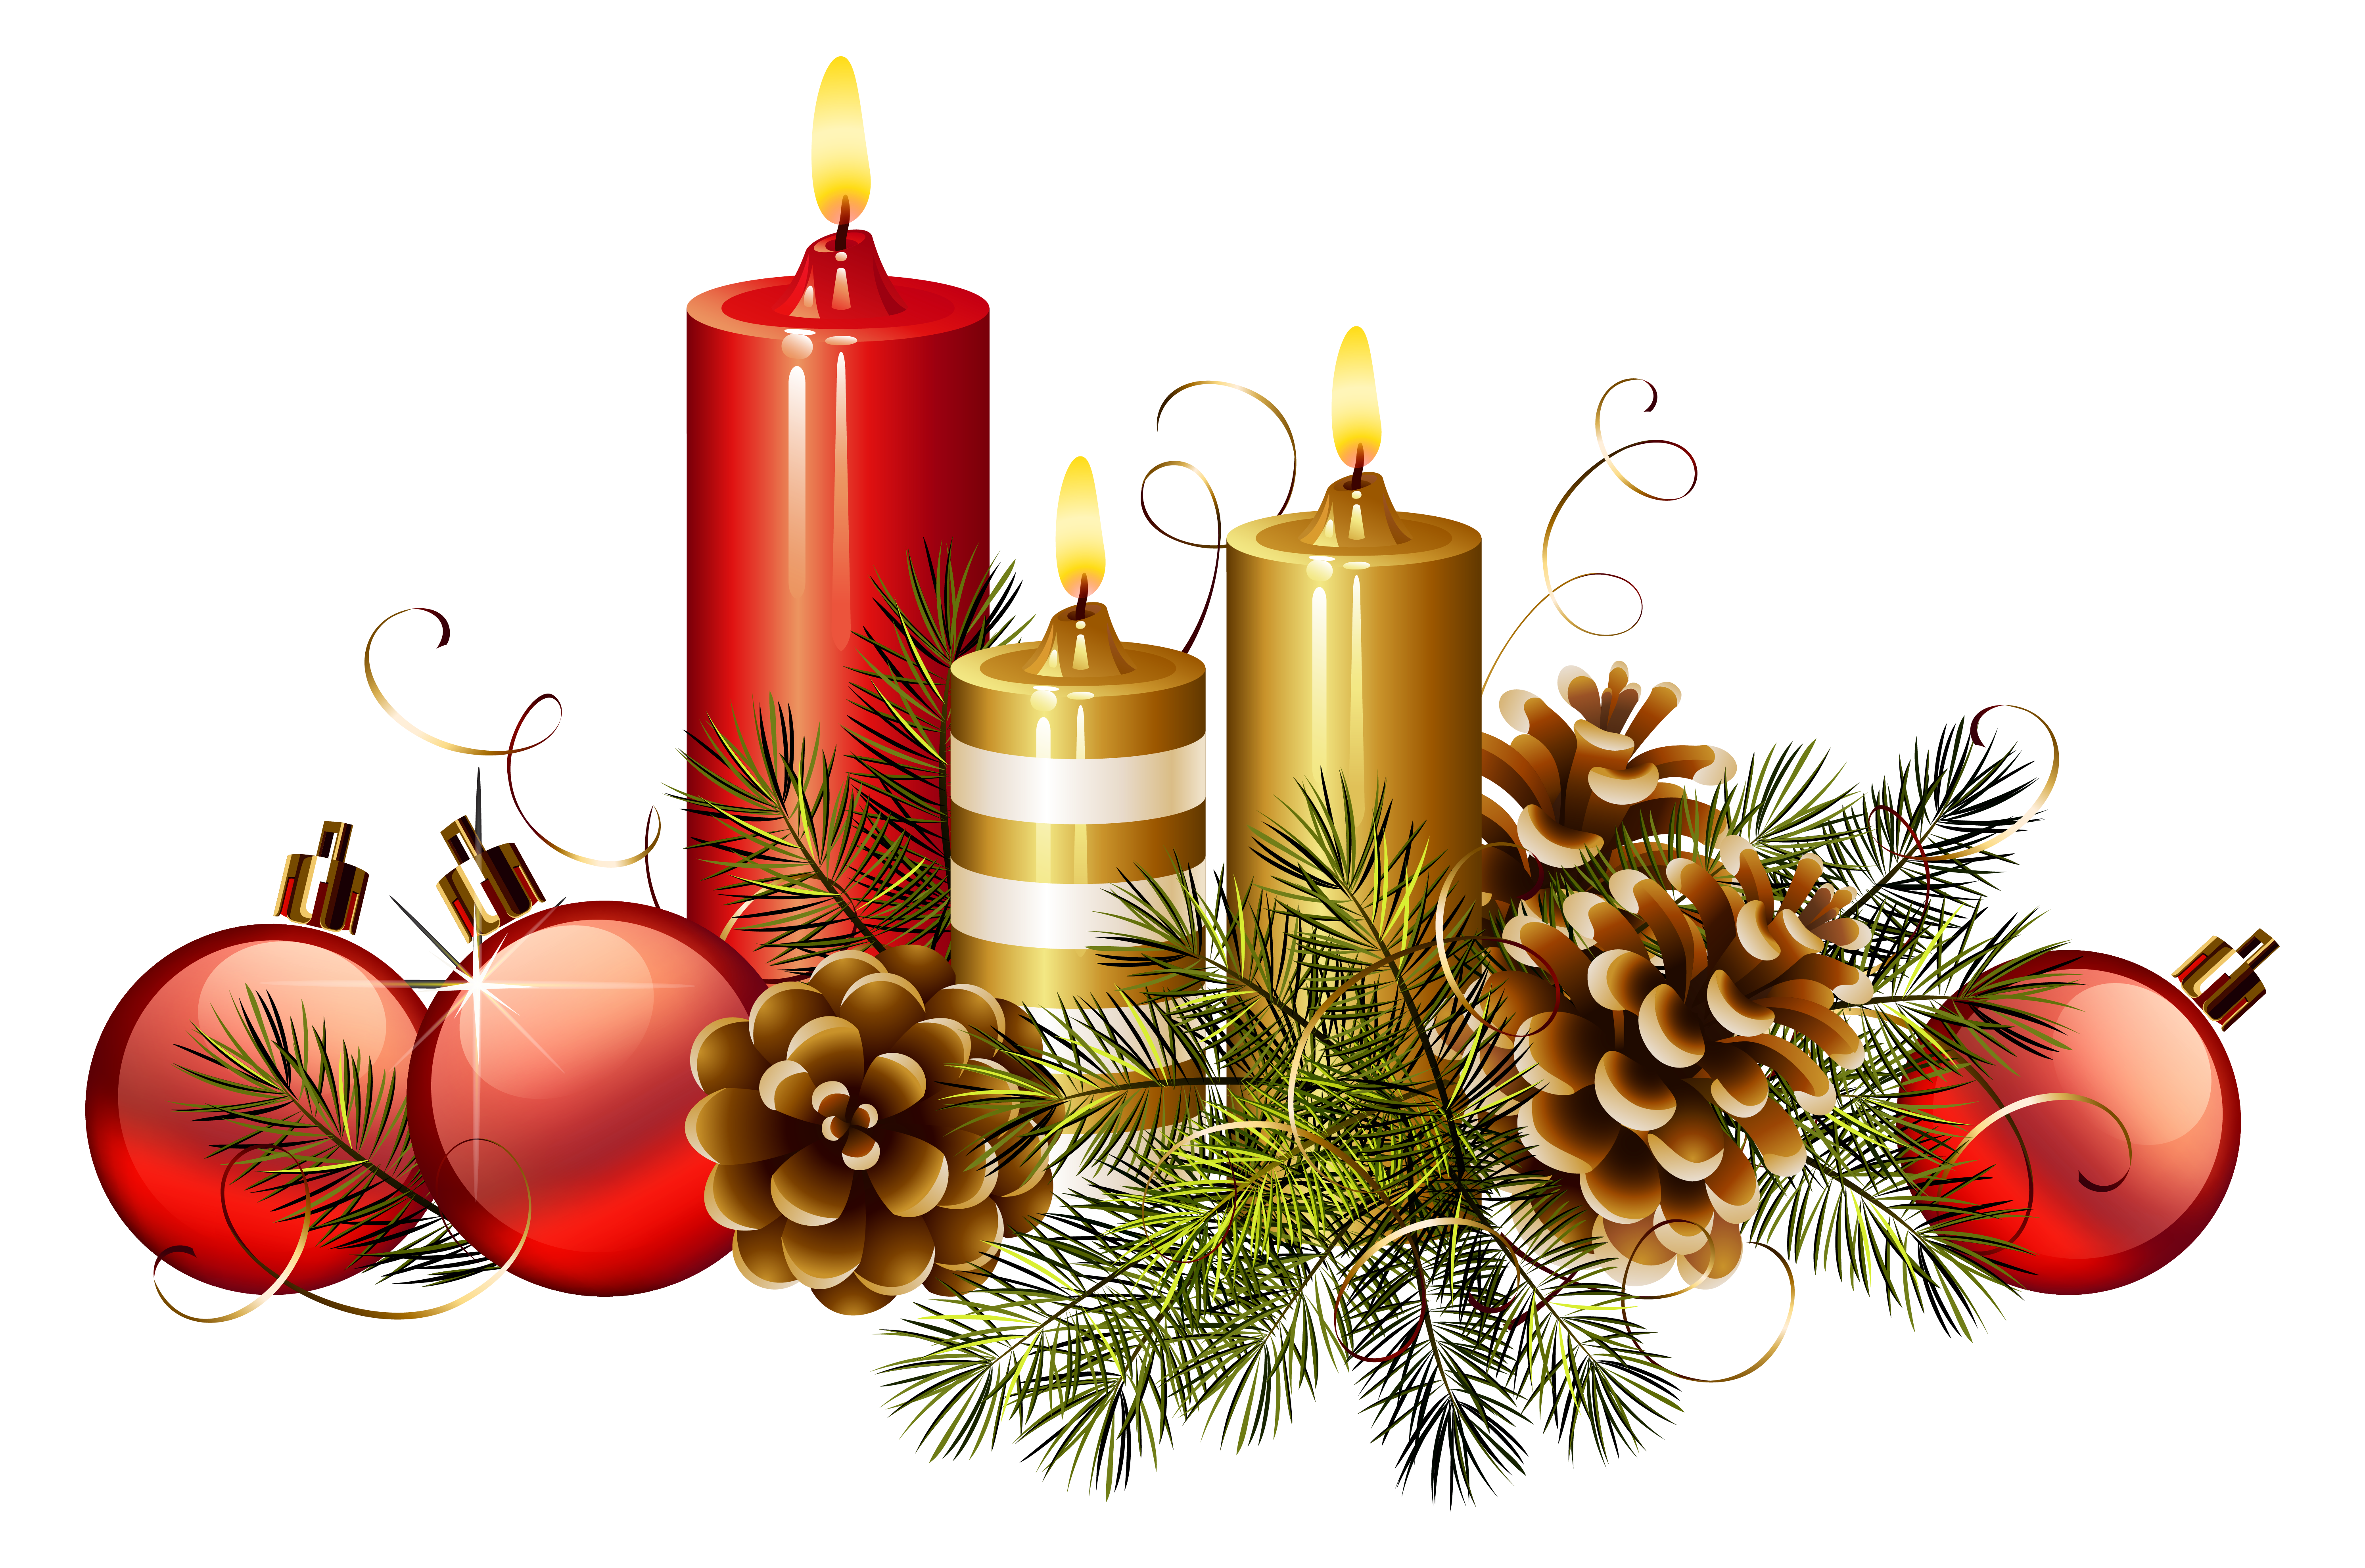 Christmas candle png. Candles clipart image gallery